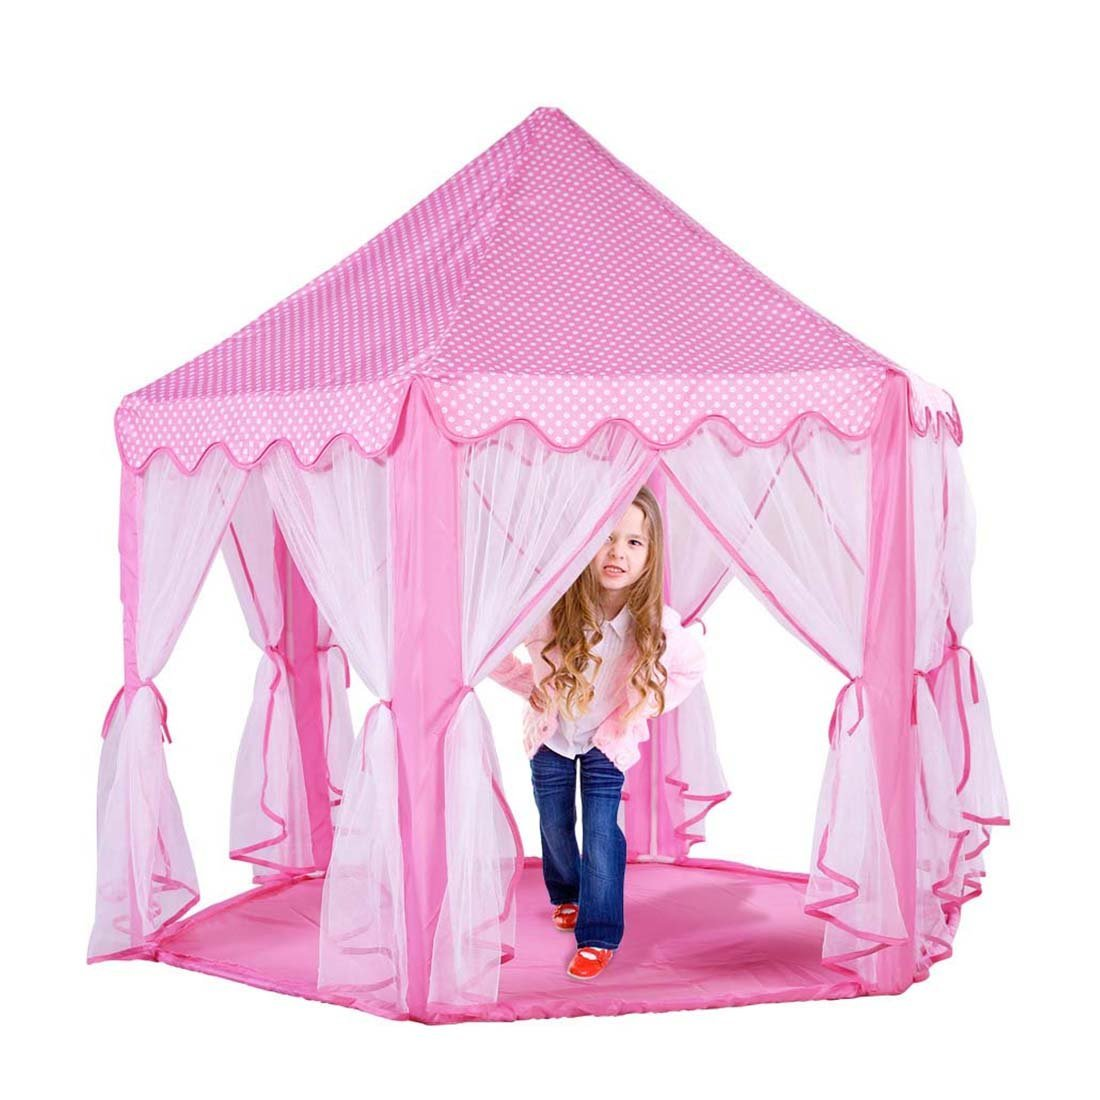 Pink Princess Castle Kids Play Tent for Girls Princess Castle Play Tent Playhouse Toy Game House  sc 1 st  Walmart & Pink Princess Castle Kids Play Tent for Girls Princess Castle Play ...